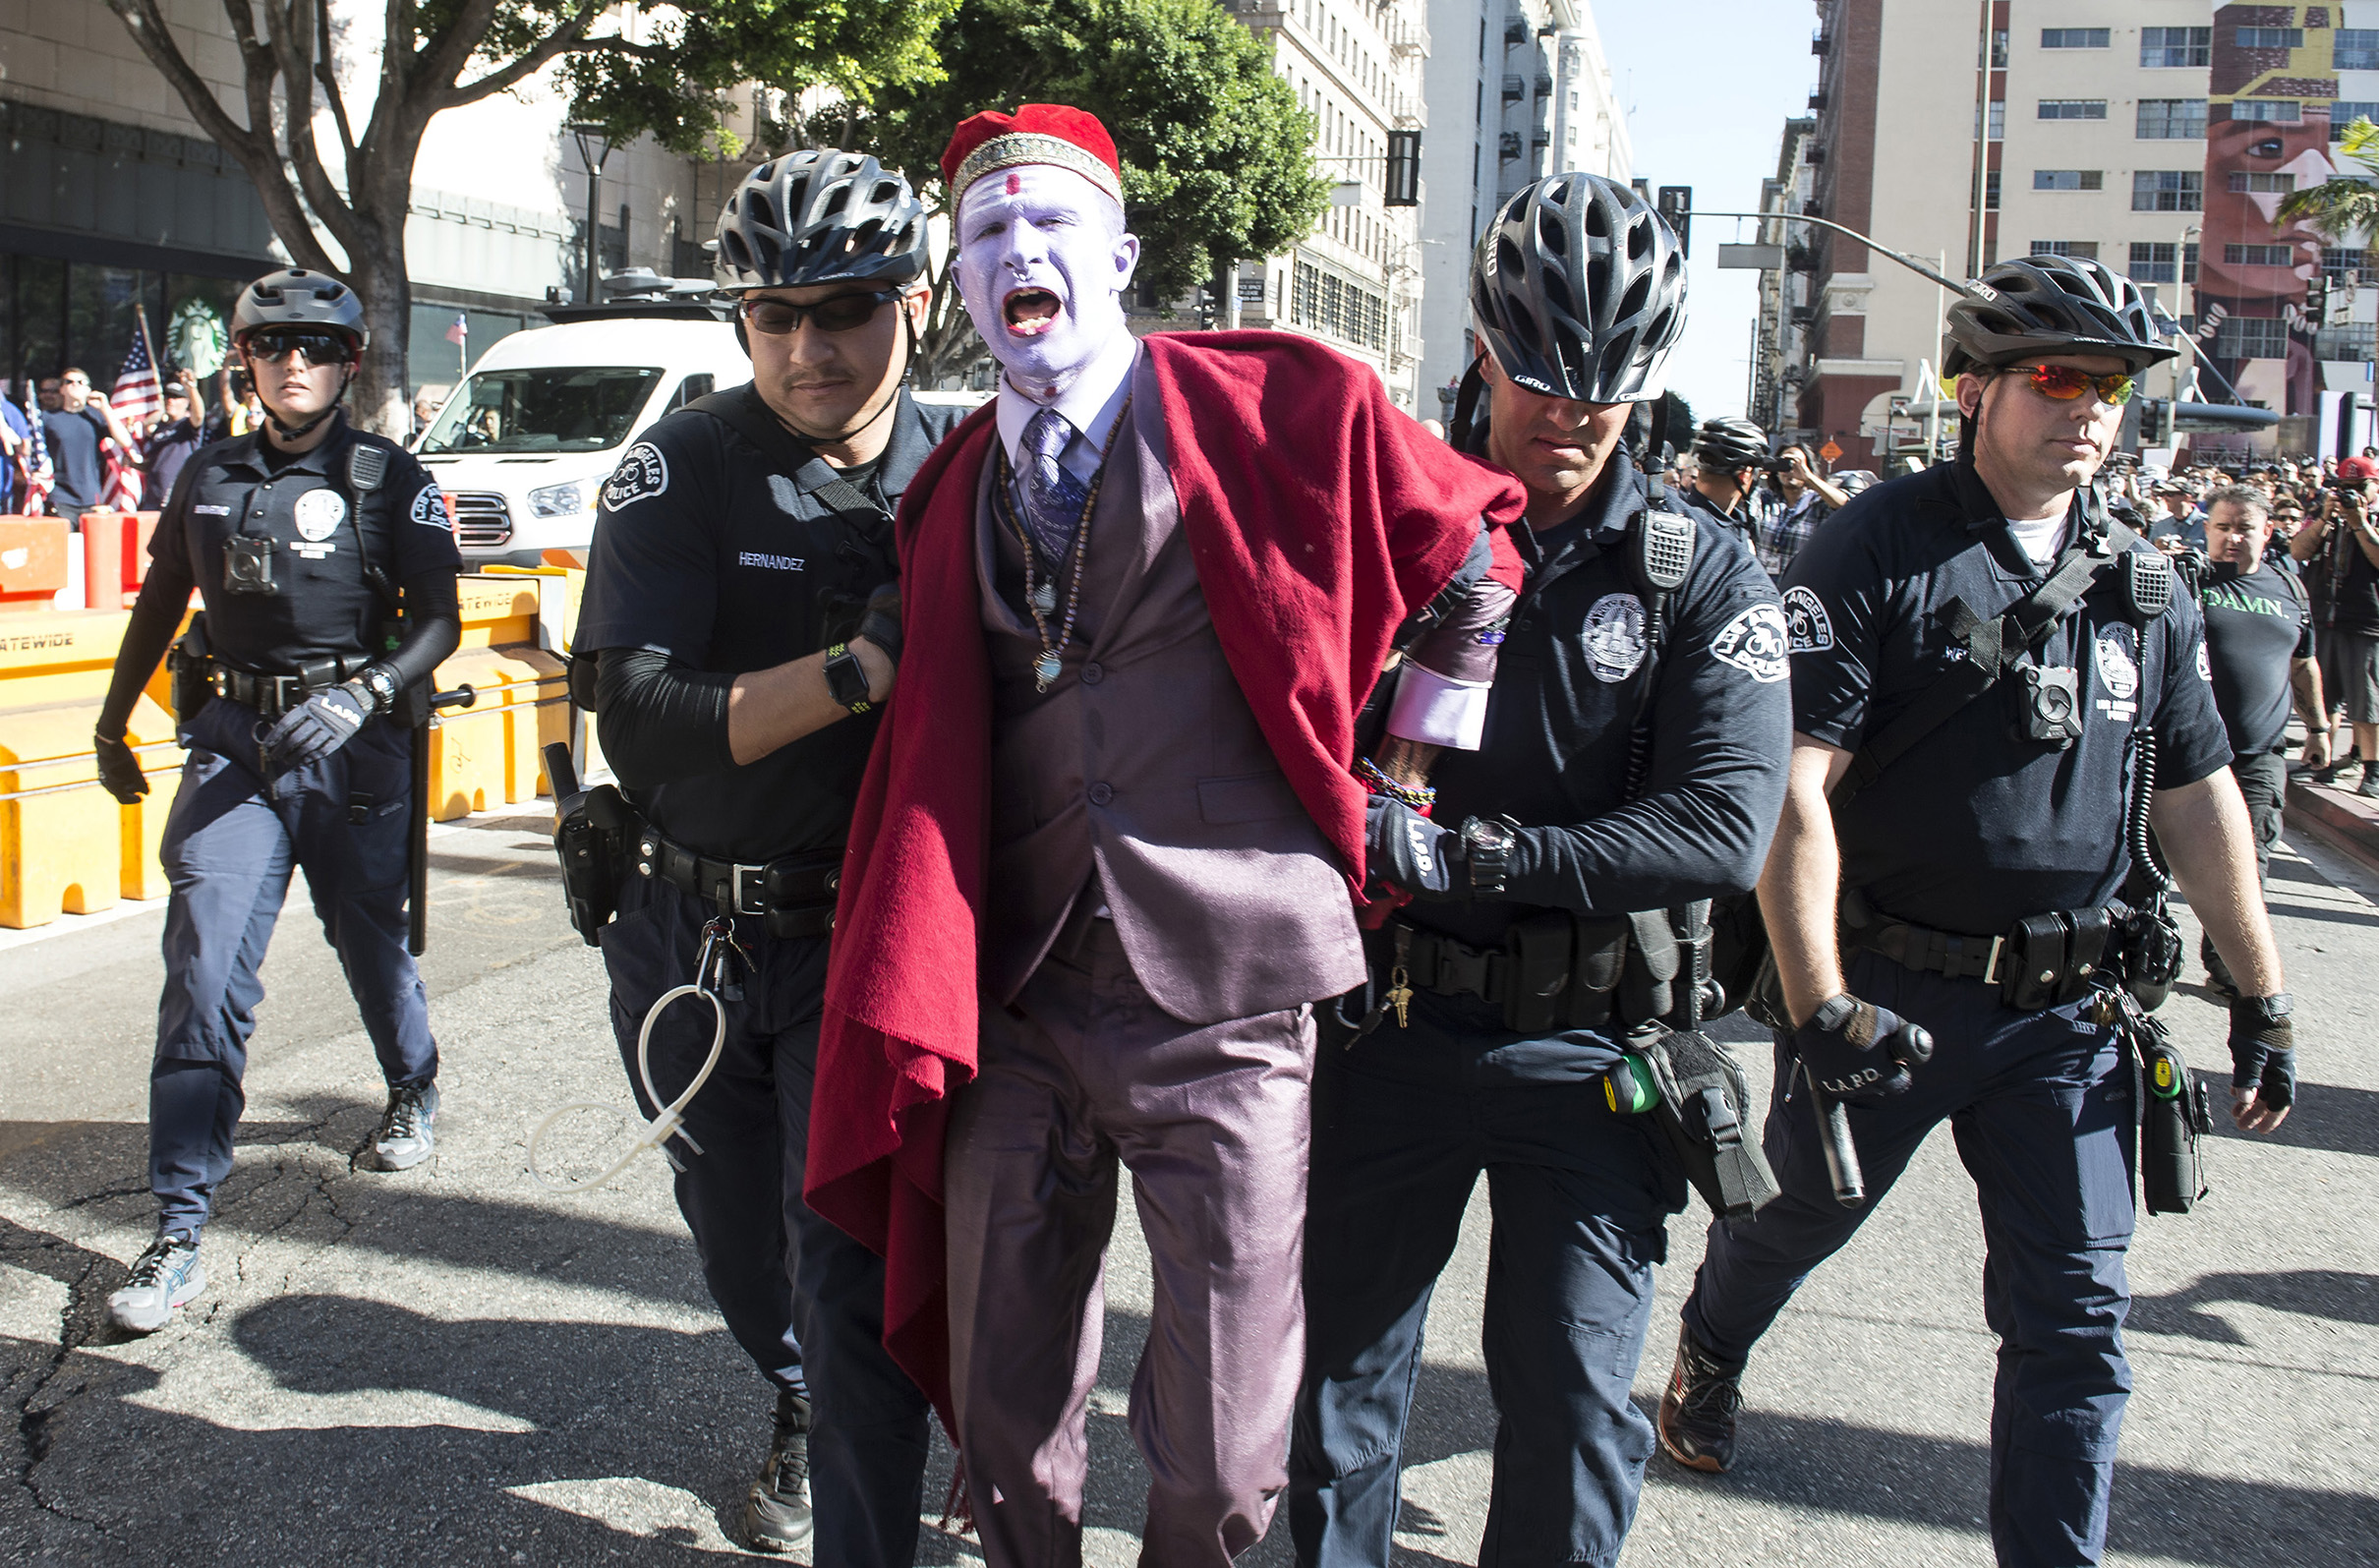 """Henry Walters is taken into custody by LAPD police officers on suspicion of attempting to incite a riot during """"This Nightmare Must End: the Trump/Pence Regime Must Go!"""" protest in downtown Los Angeles on Saturday, Nov. 4, 2017. A protest against President Donald Trump drew a group of counter-demonstrators to downtown Los Angeles with the two groups kept apart by police."""